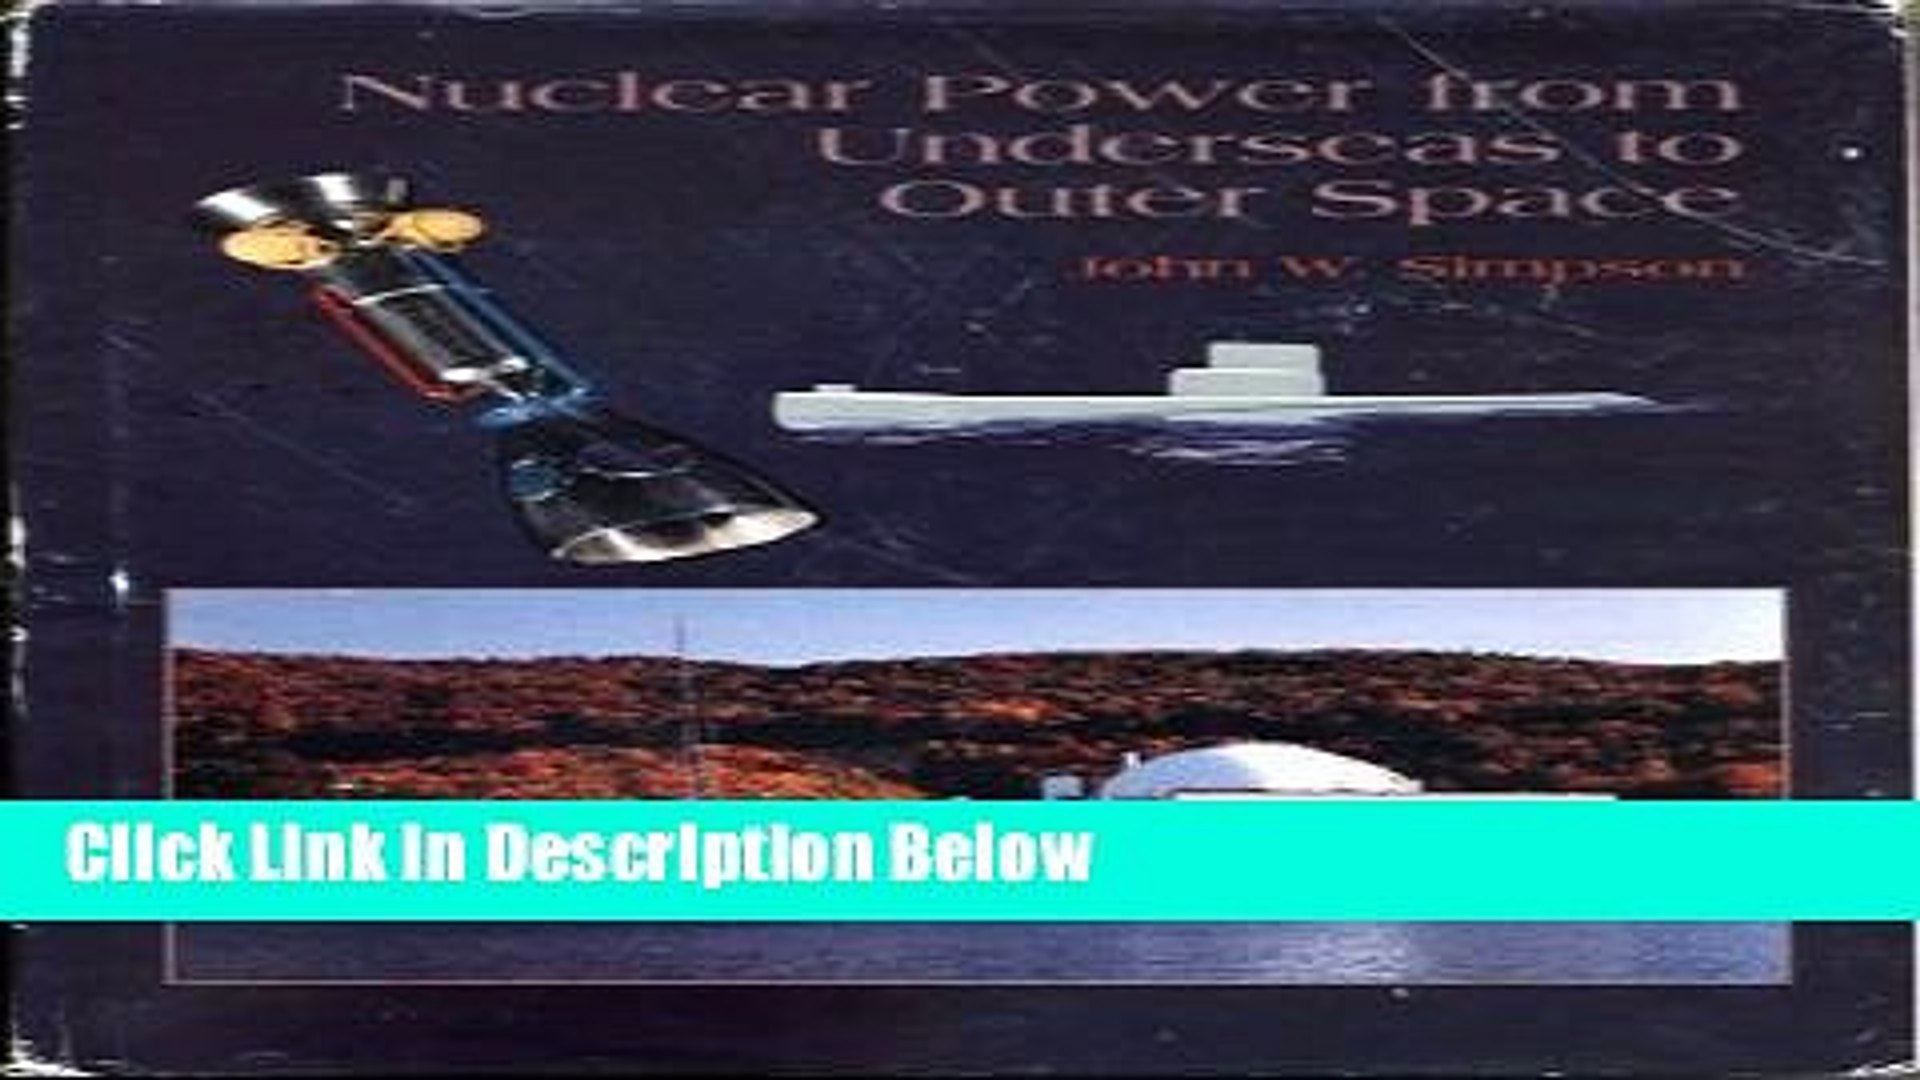 [PDF] Nuclear Power from Underseas to Outer Space [Online Books]